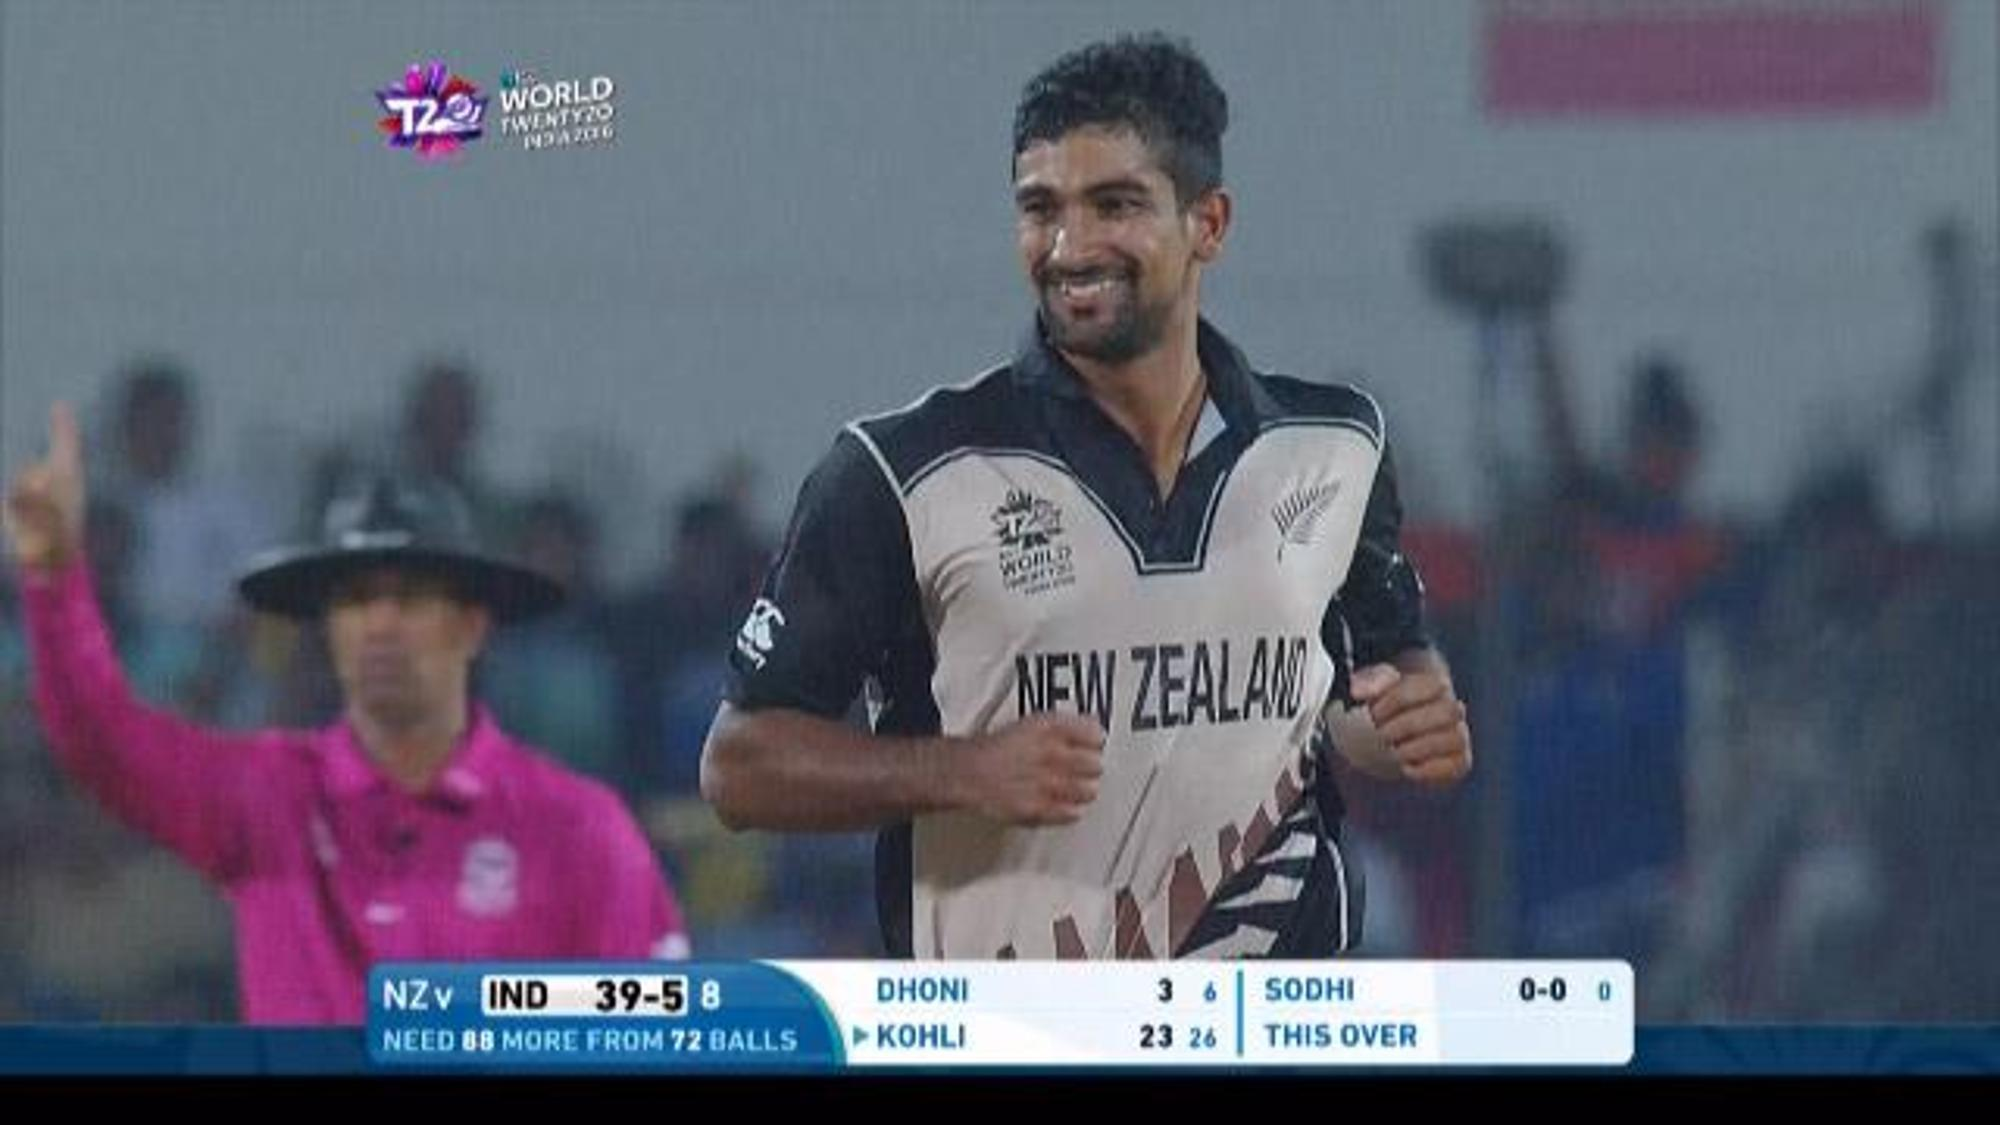 Ish Sodhi Match Hero for New Zealand v IND ICC WT20 2016